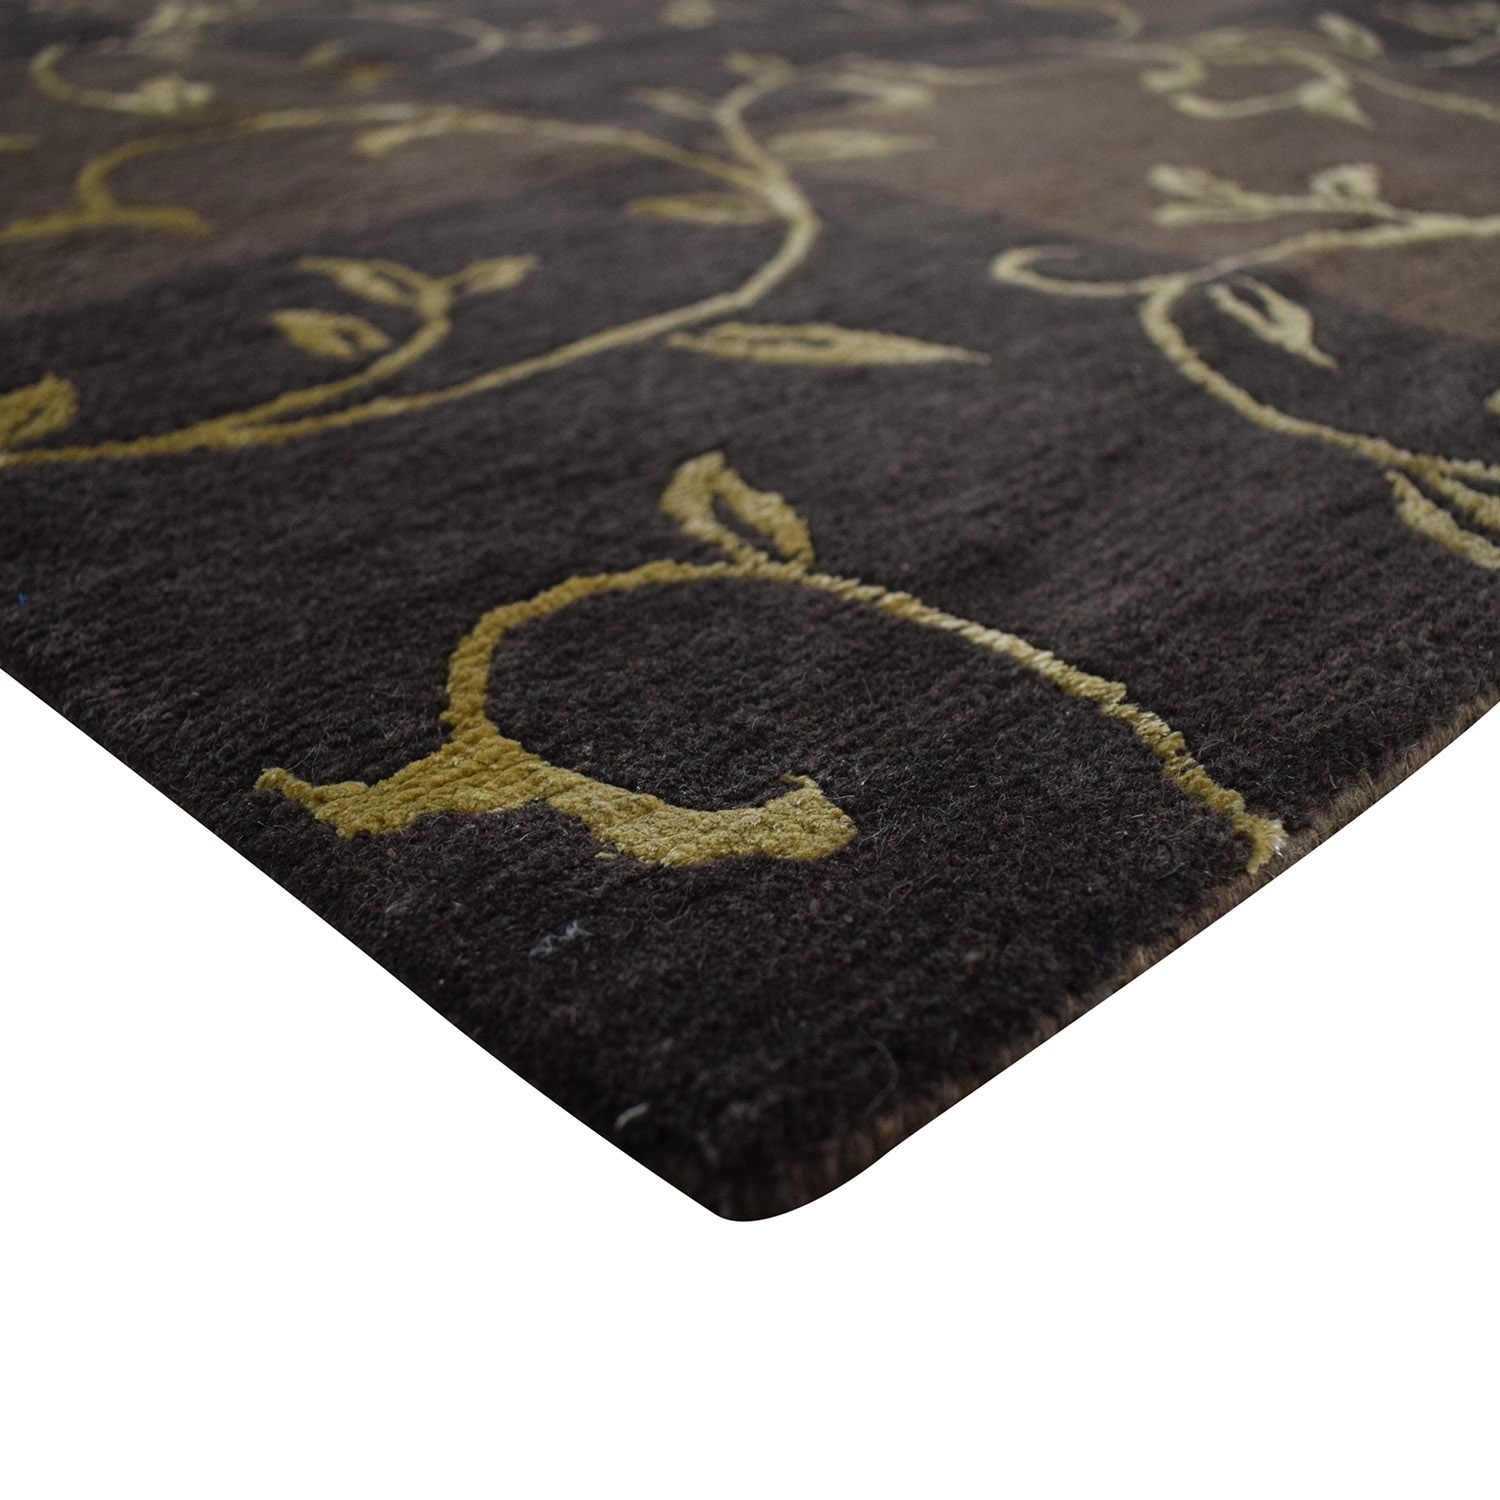 ABC Carpet & Home ABC Carpet & Home Brown and Gold Scroll Design Rug on sale